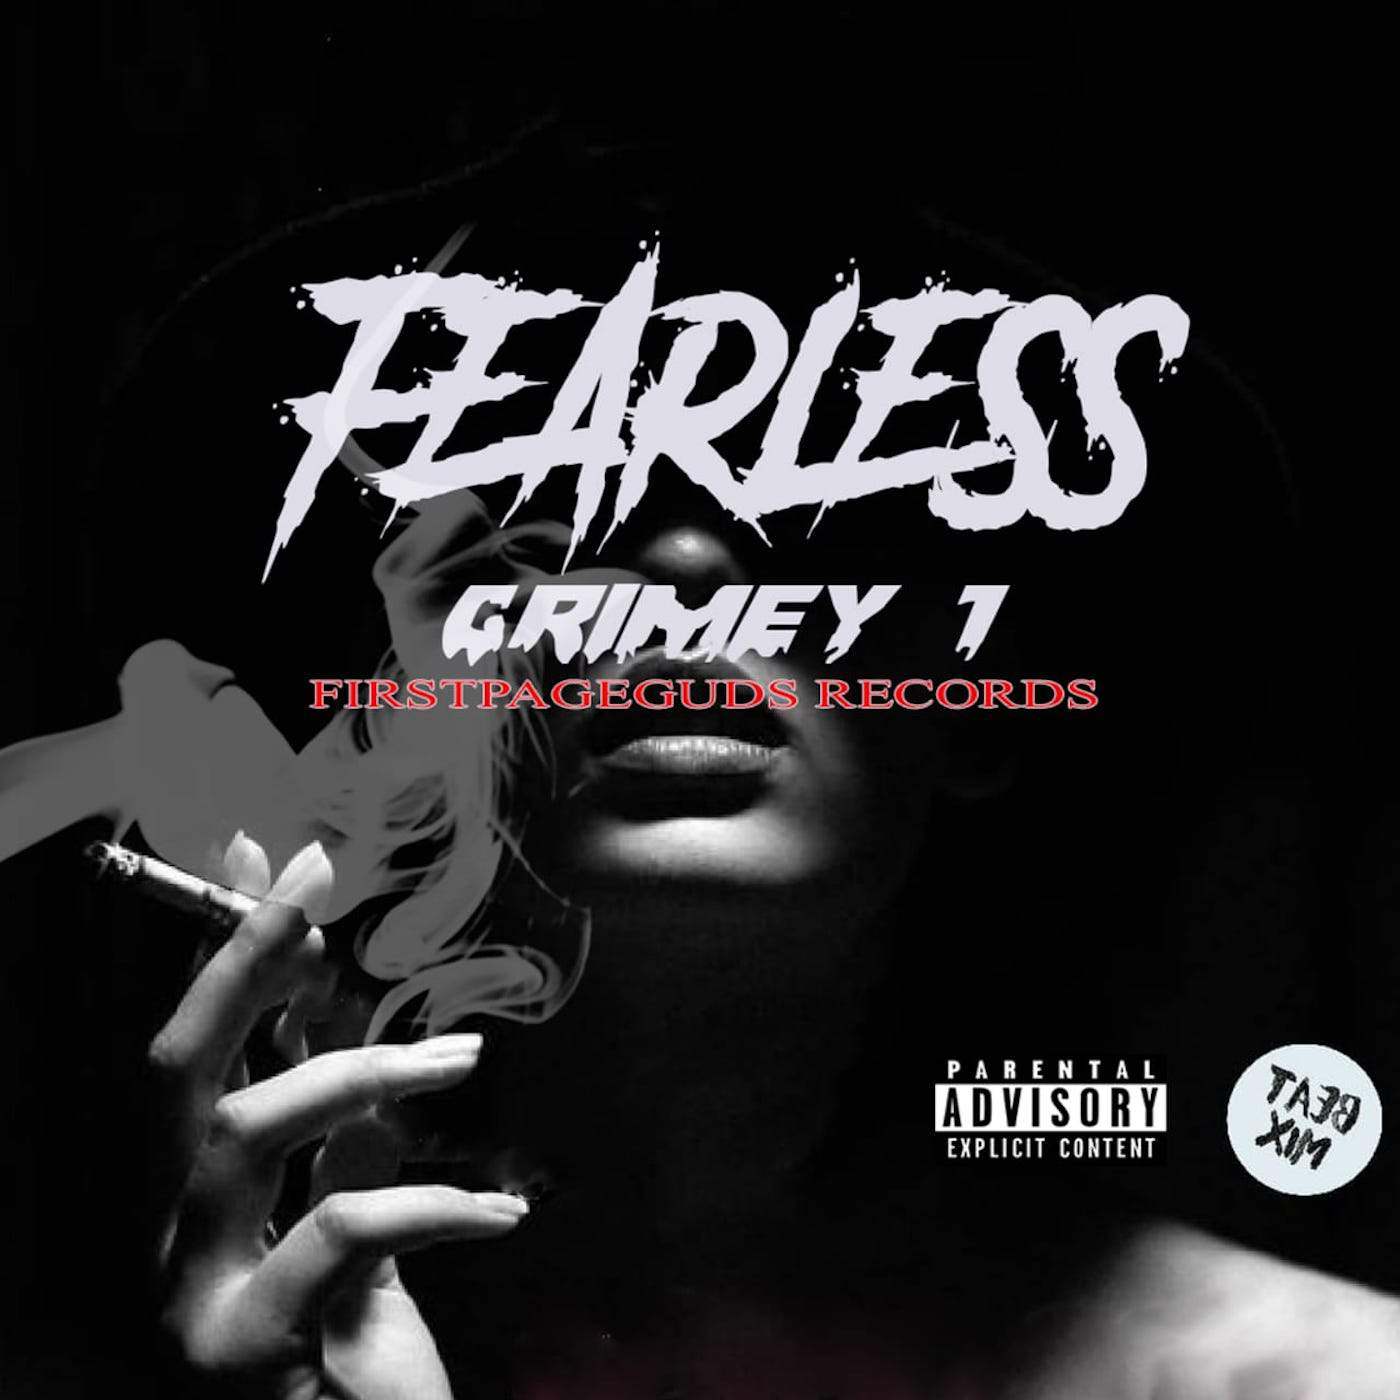 Grimey1 - Fearless - FirstPageGuds Records